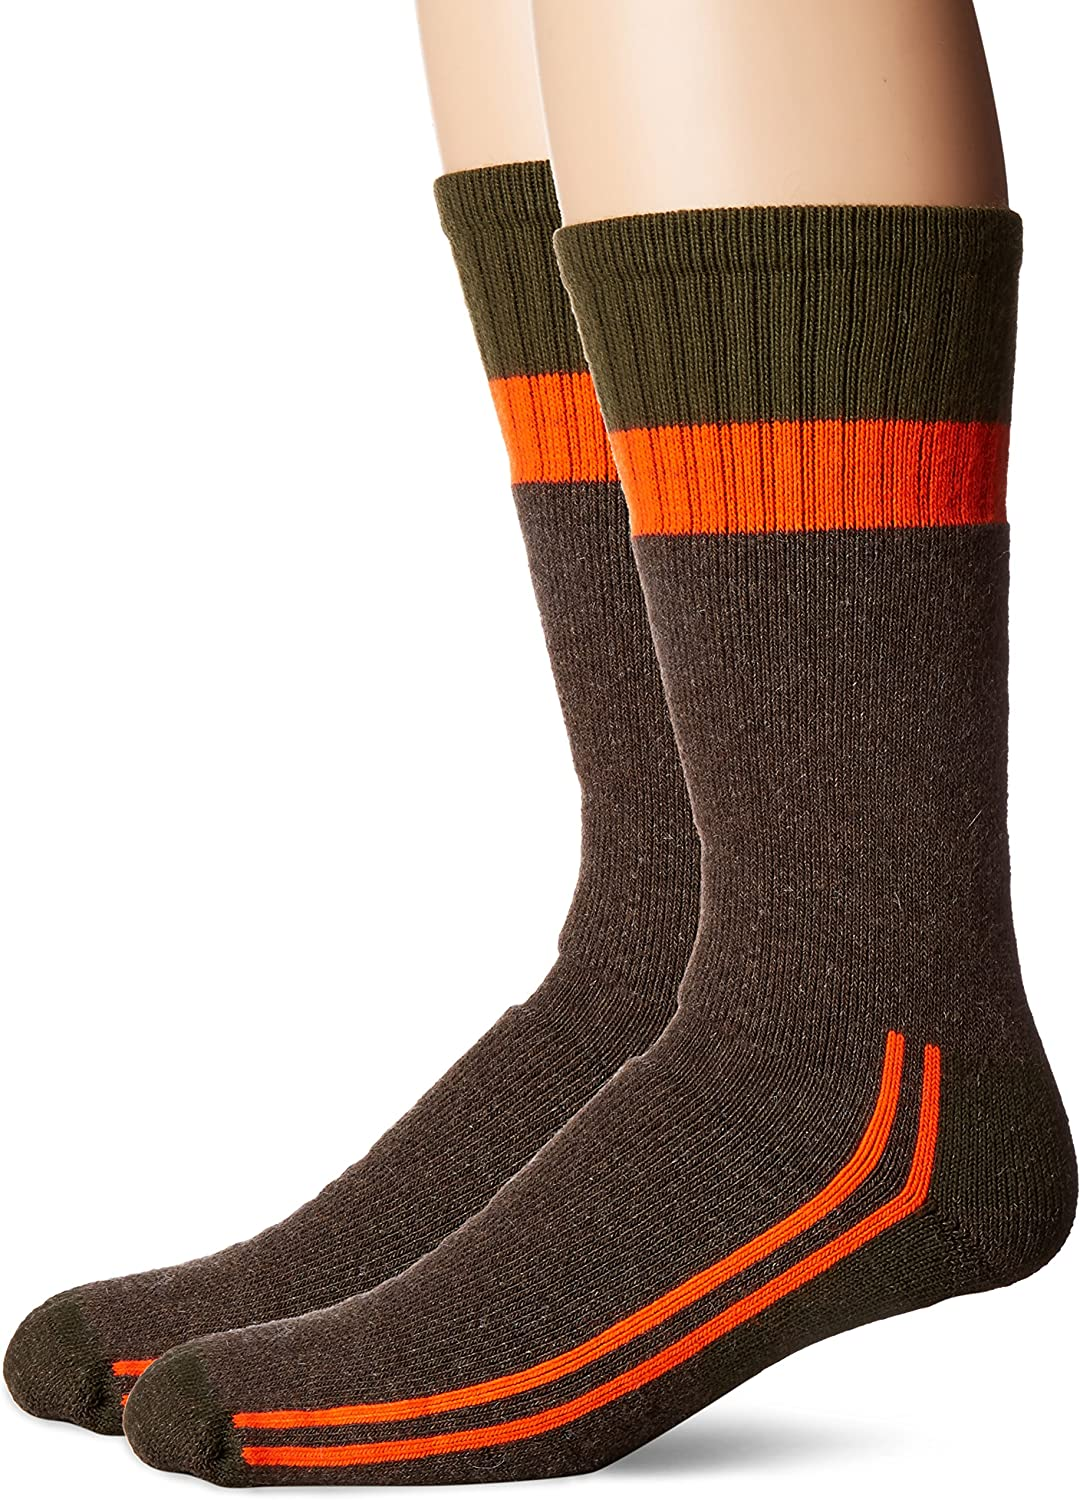 Durable Wicking Fruit of the Loom mens Cotton Work Gear Crew Socks 10 Pack Casual Sock Cushioned